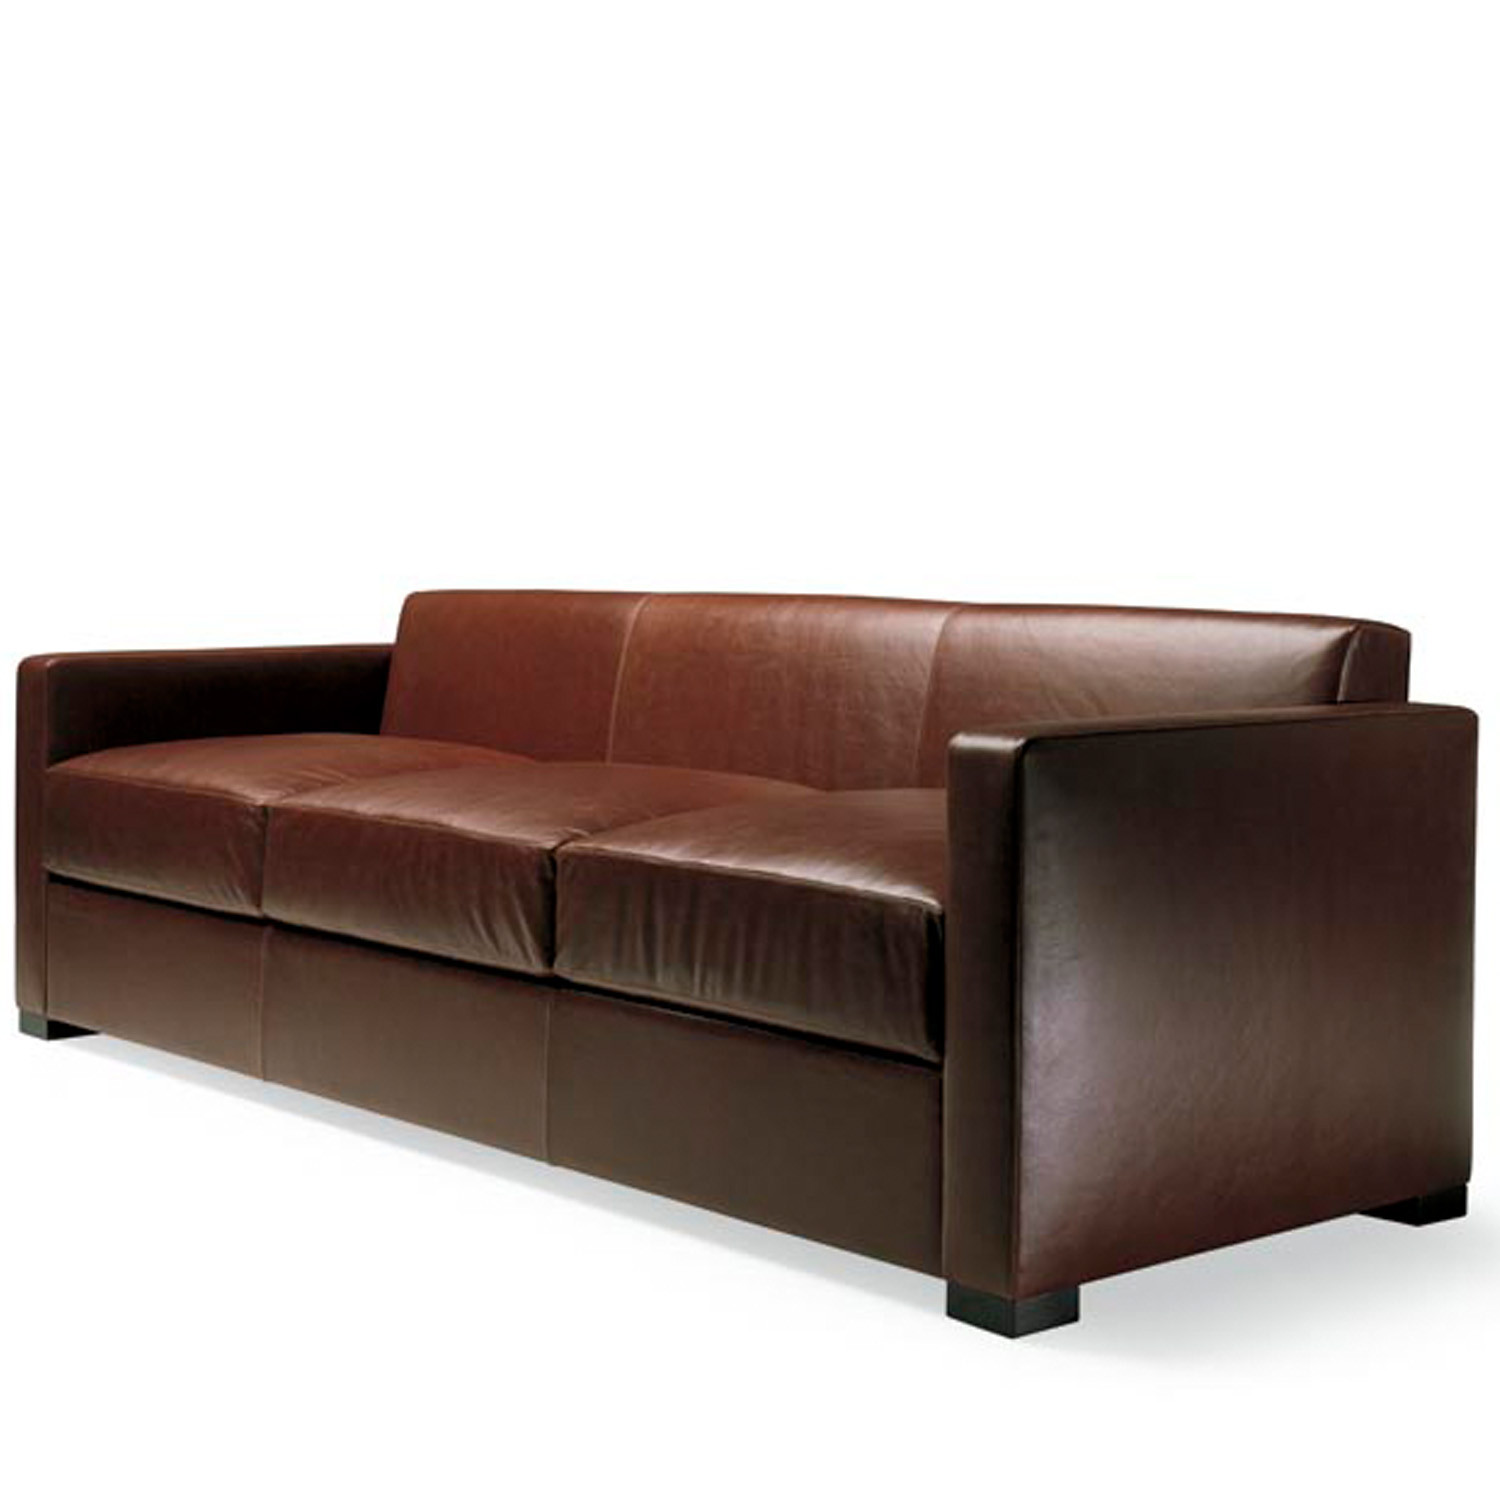 Linea A Sofa 3 Seater